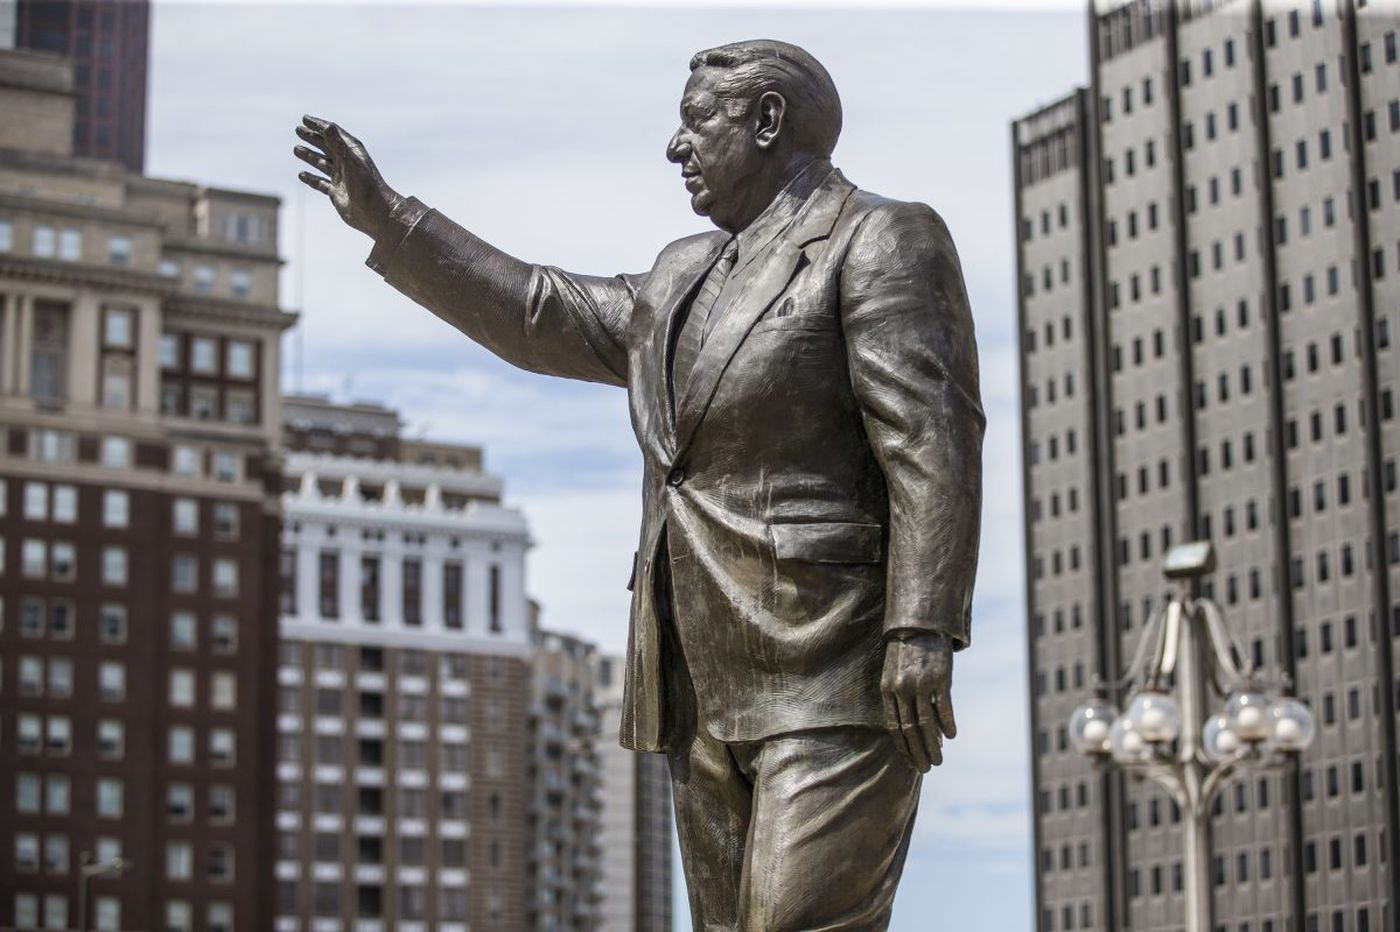 Sculptor of Frank Rizzo statue is against moving it, warns of damage